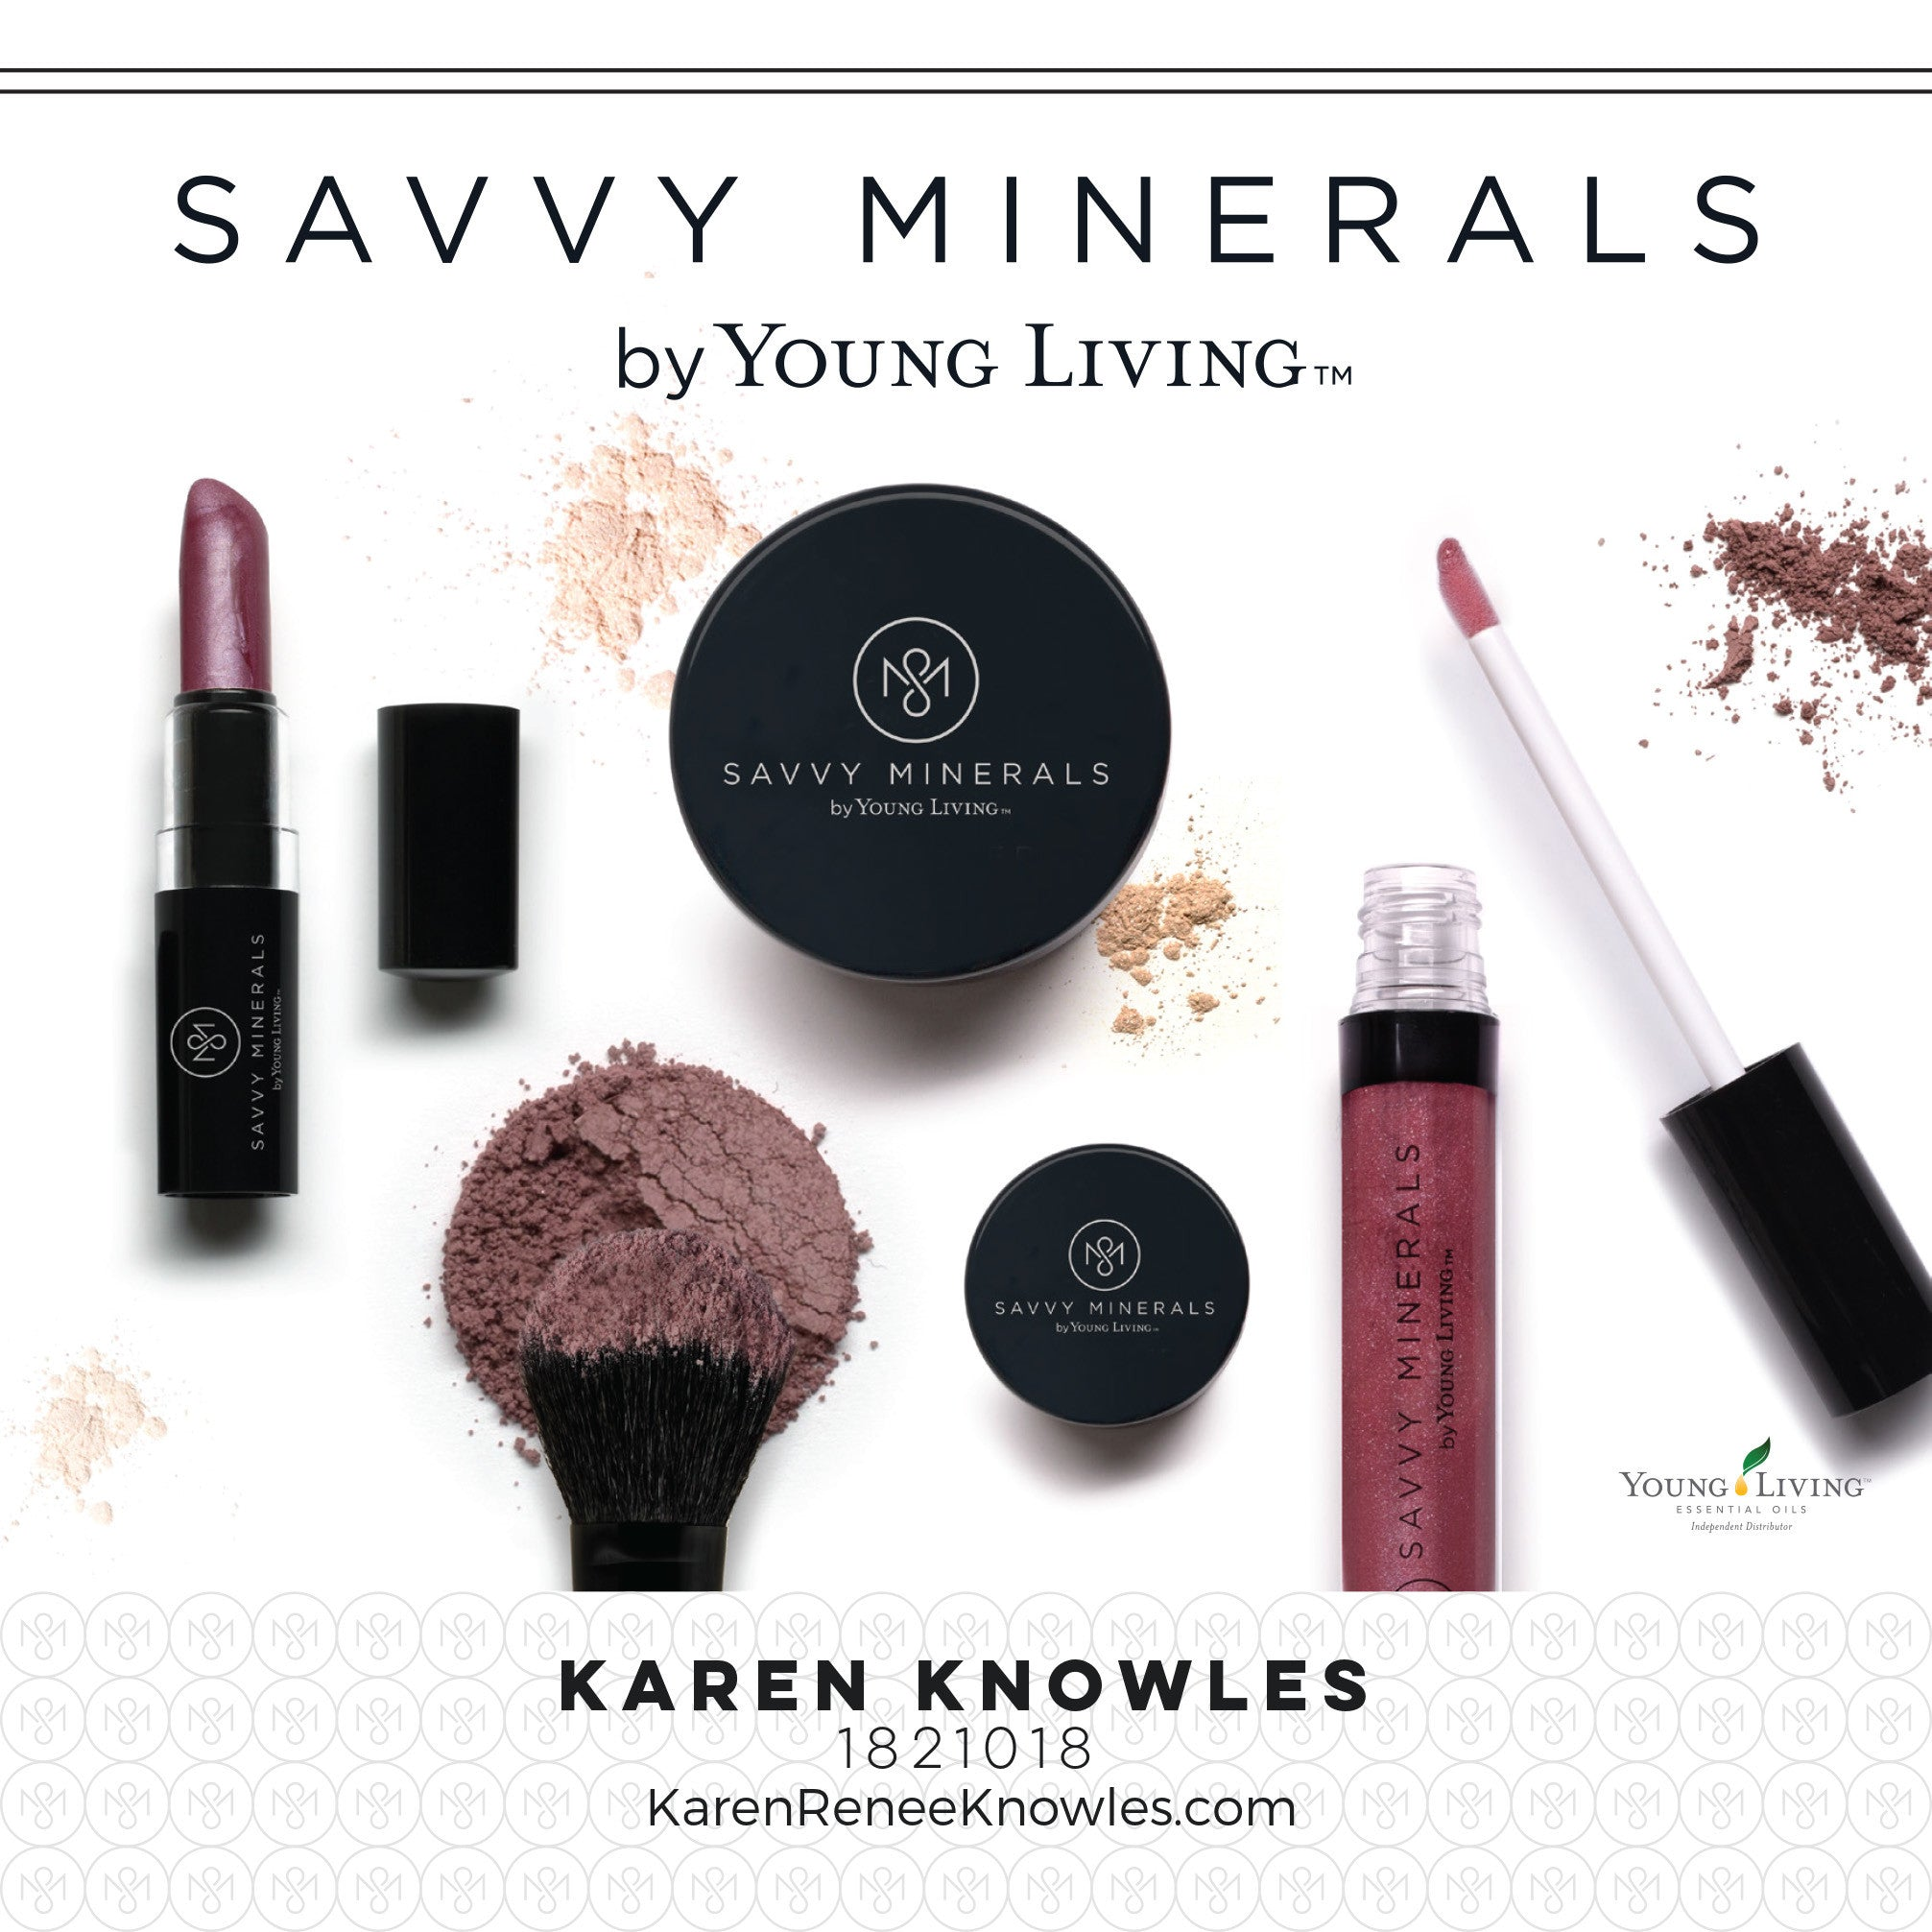 New Young Living Products including Savvy Minerals Natural Make-Up line!!